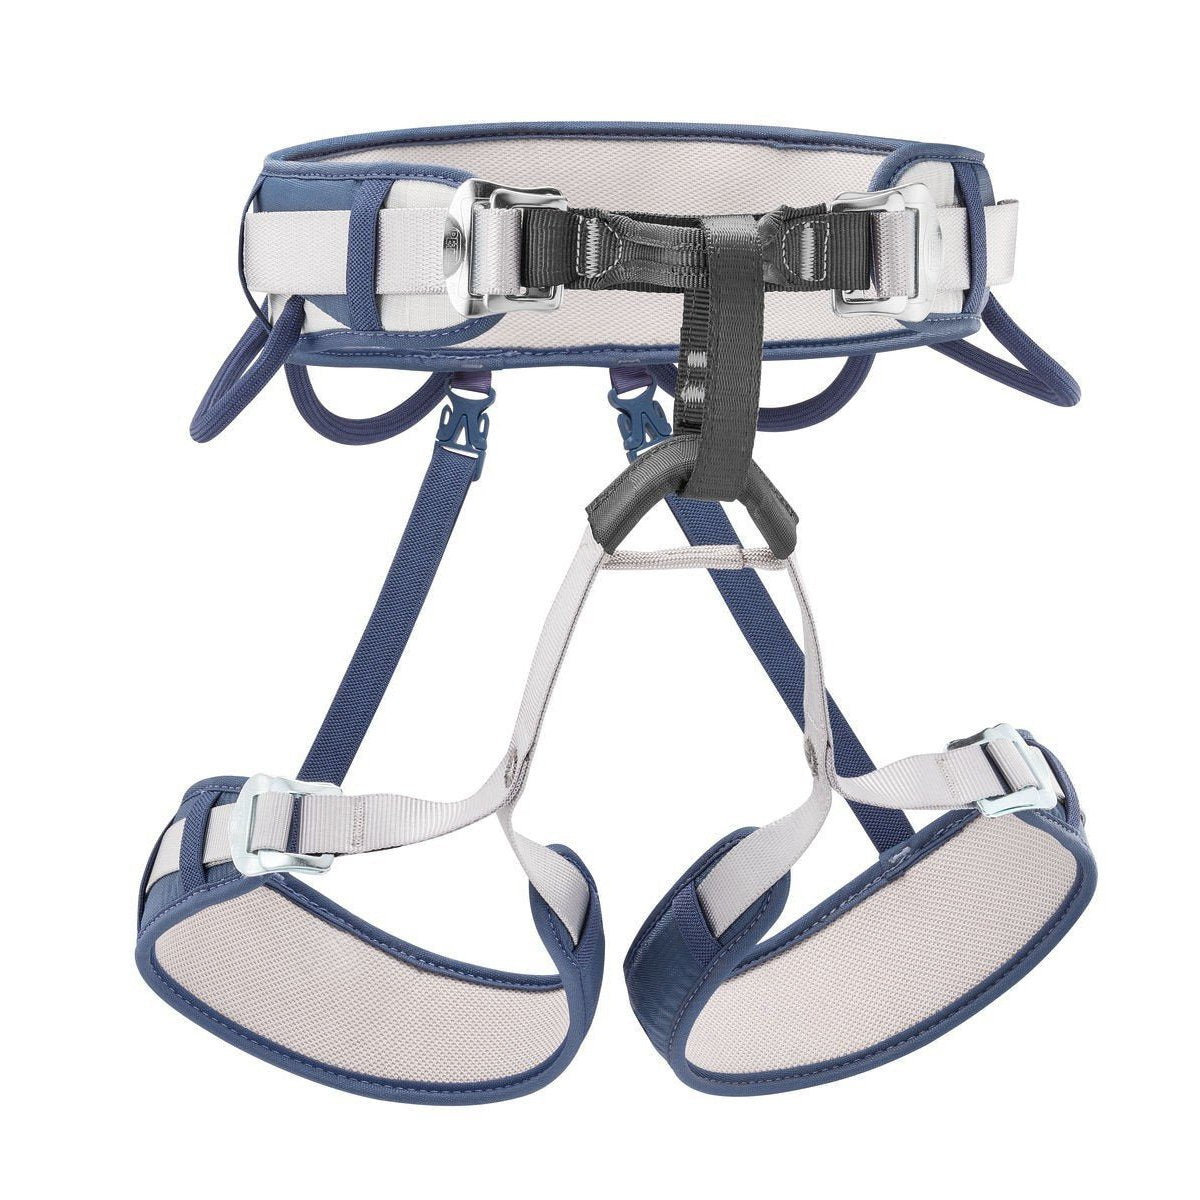 Petzl Corax Harness, front view in blue, grey and black colours